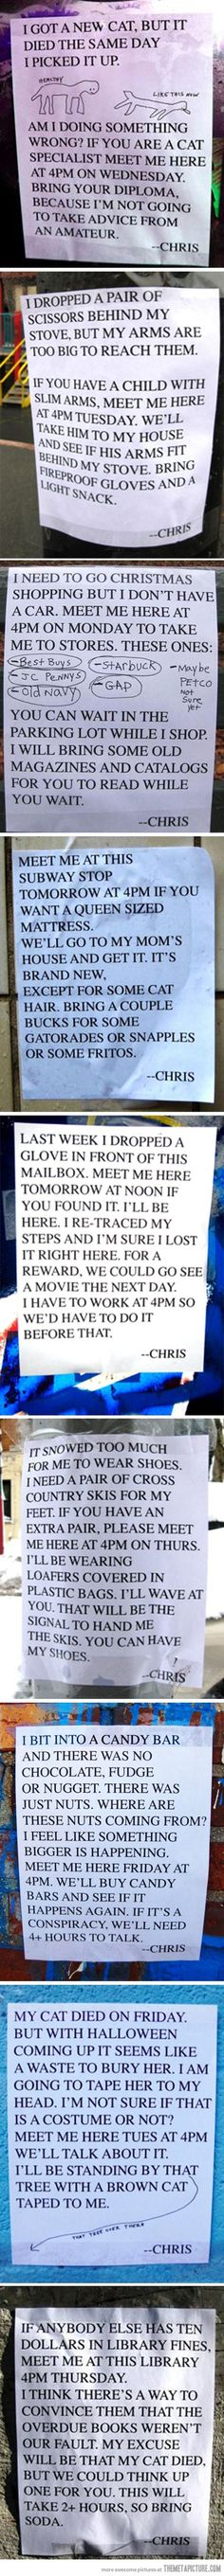 I'm pretty sure I'd like to meet Chris.